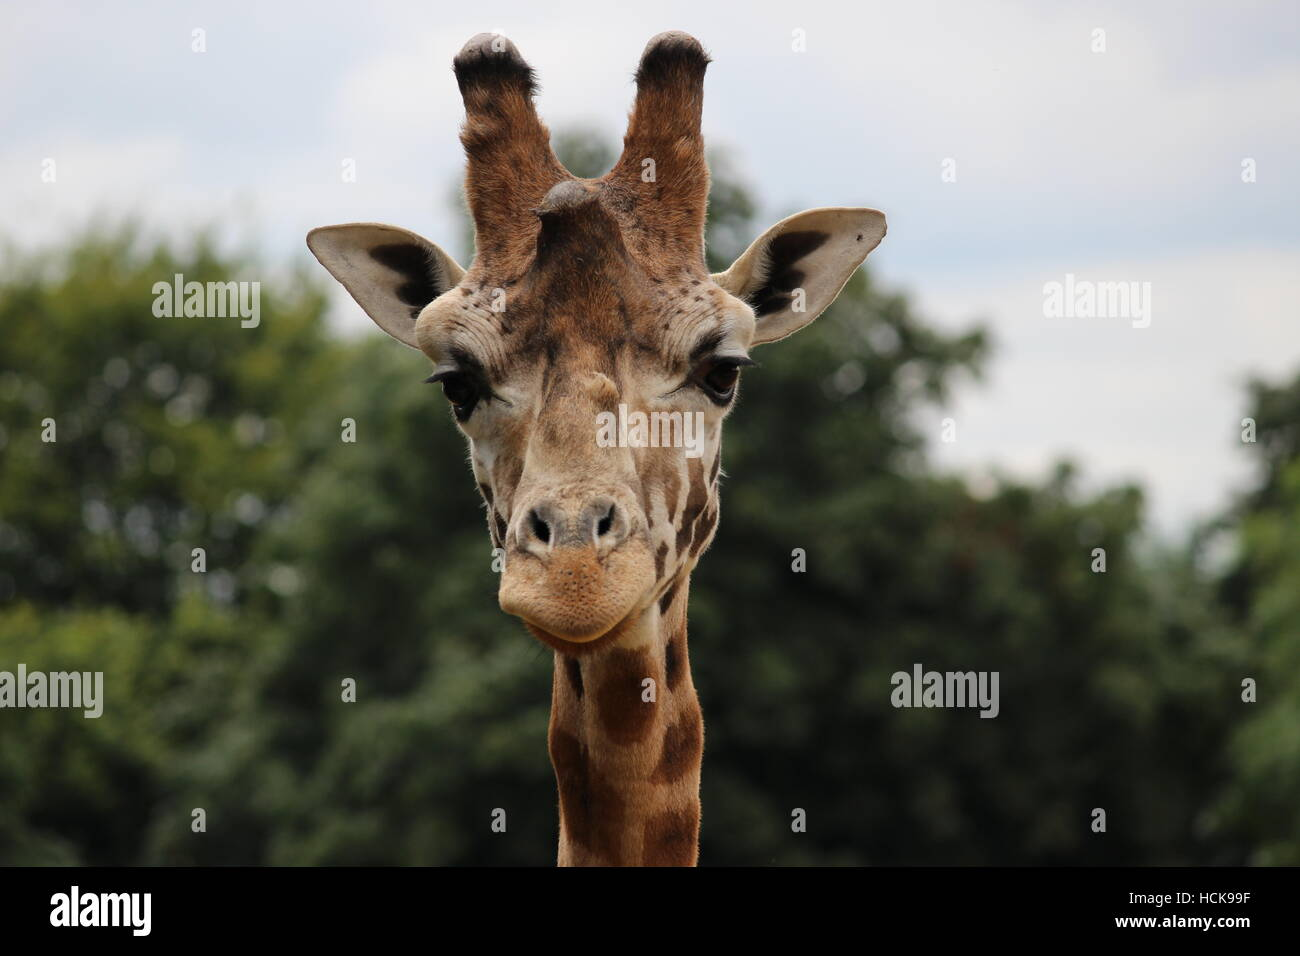 Giraffe portrait young adolescent proud headshot head smile smiling Cotswold Wildlife Park - Stock Image